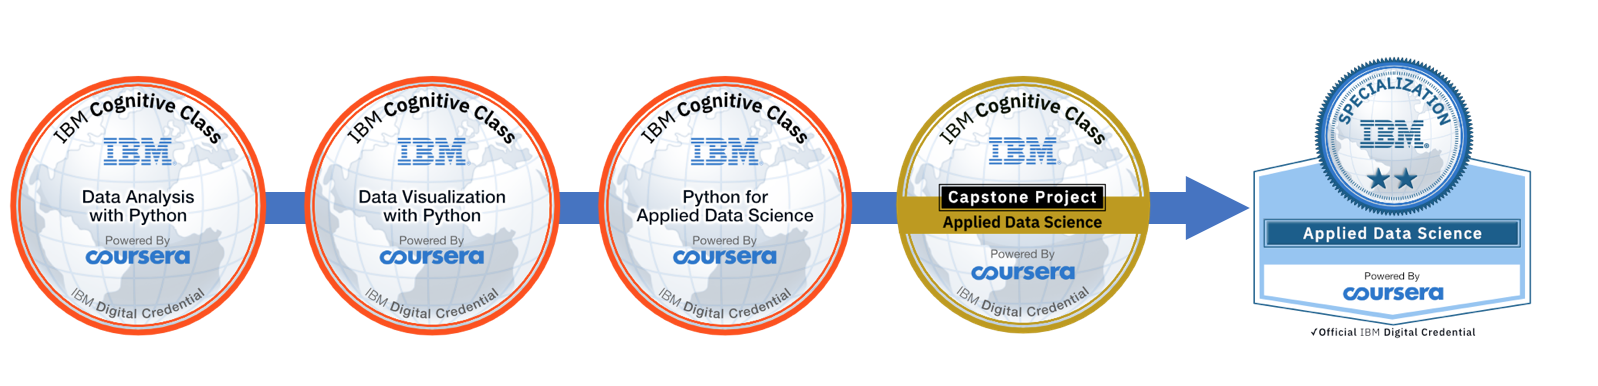 Announcing IBM Badges and new specializations on Coursera - IBM